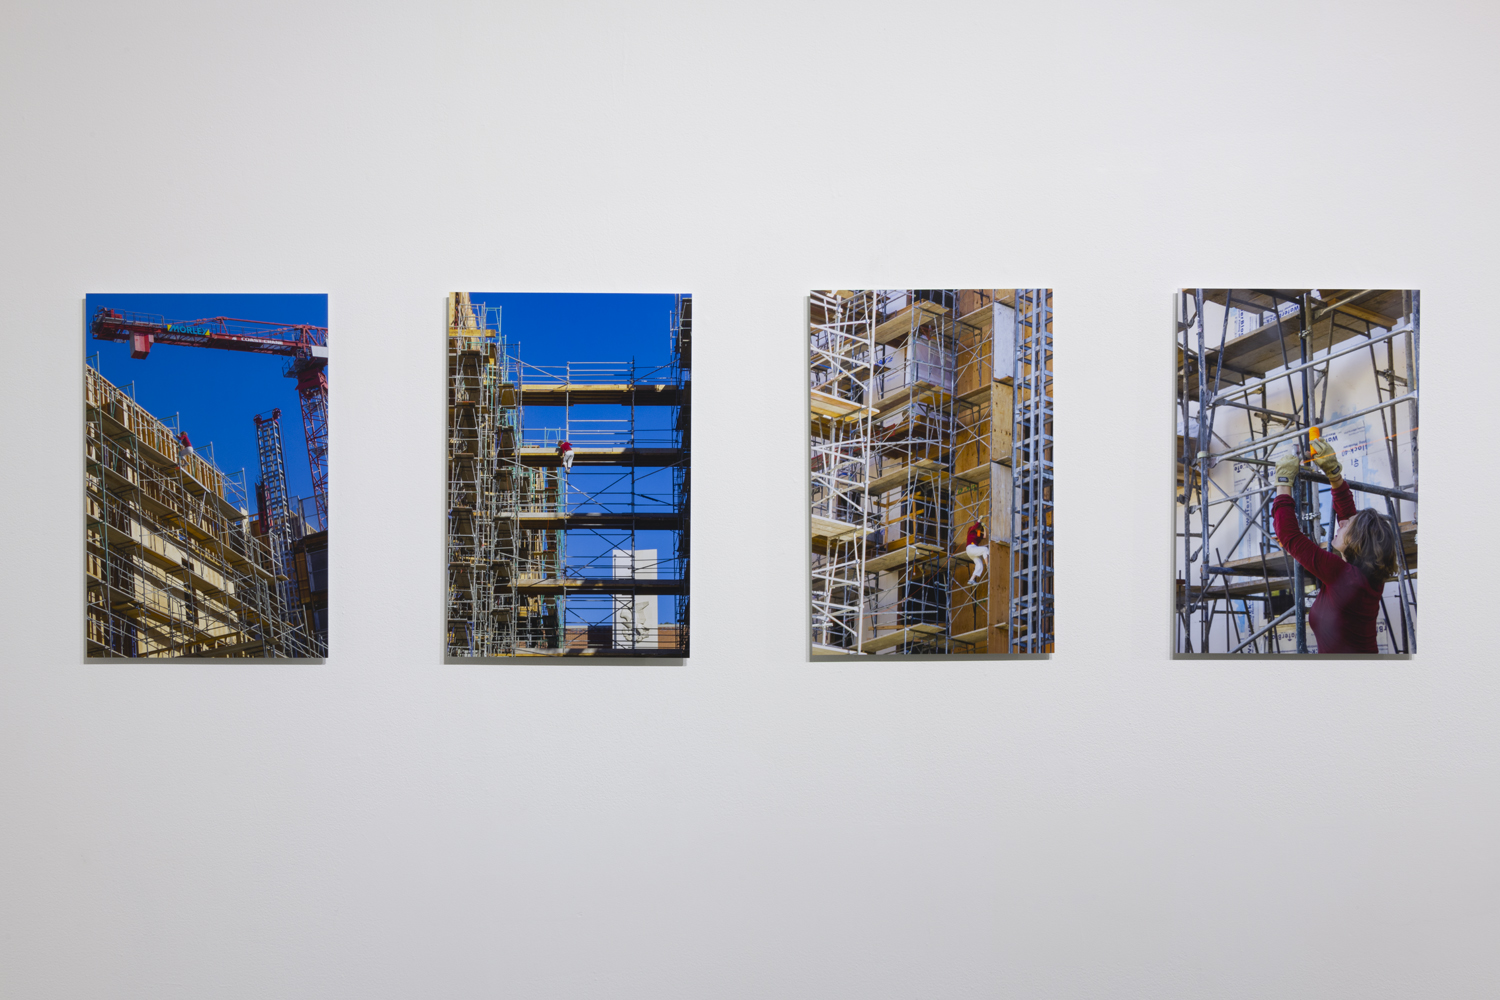 In this artwork installation by the artist Nancy Popp, there are four photographs of different construction sites. In each of the photographs, the artist is depicted in the midst of tying orange rope in and around the construction sites.